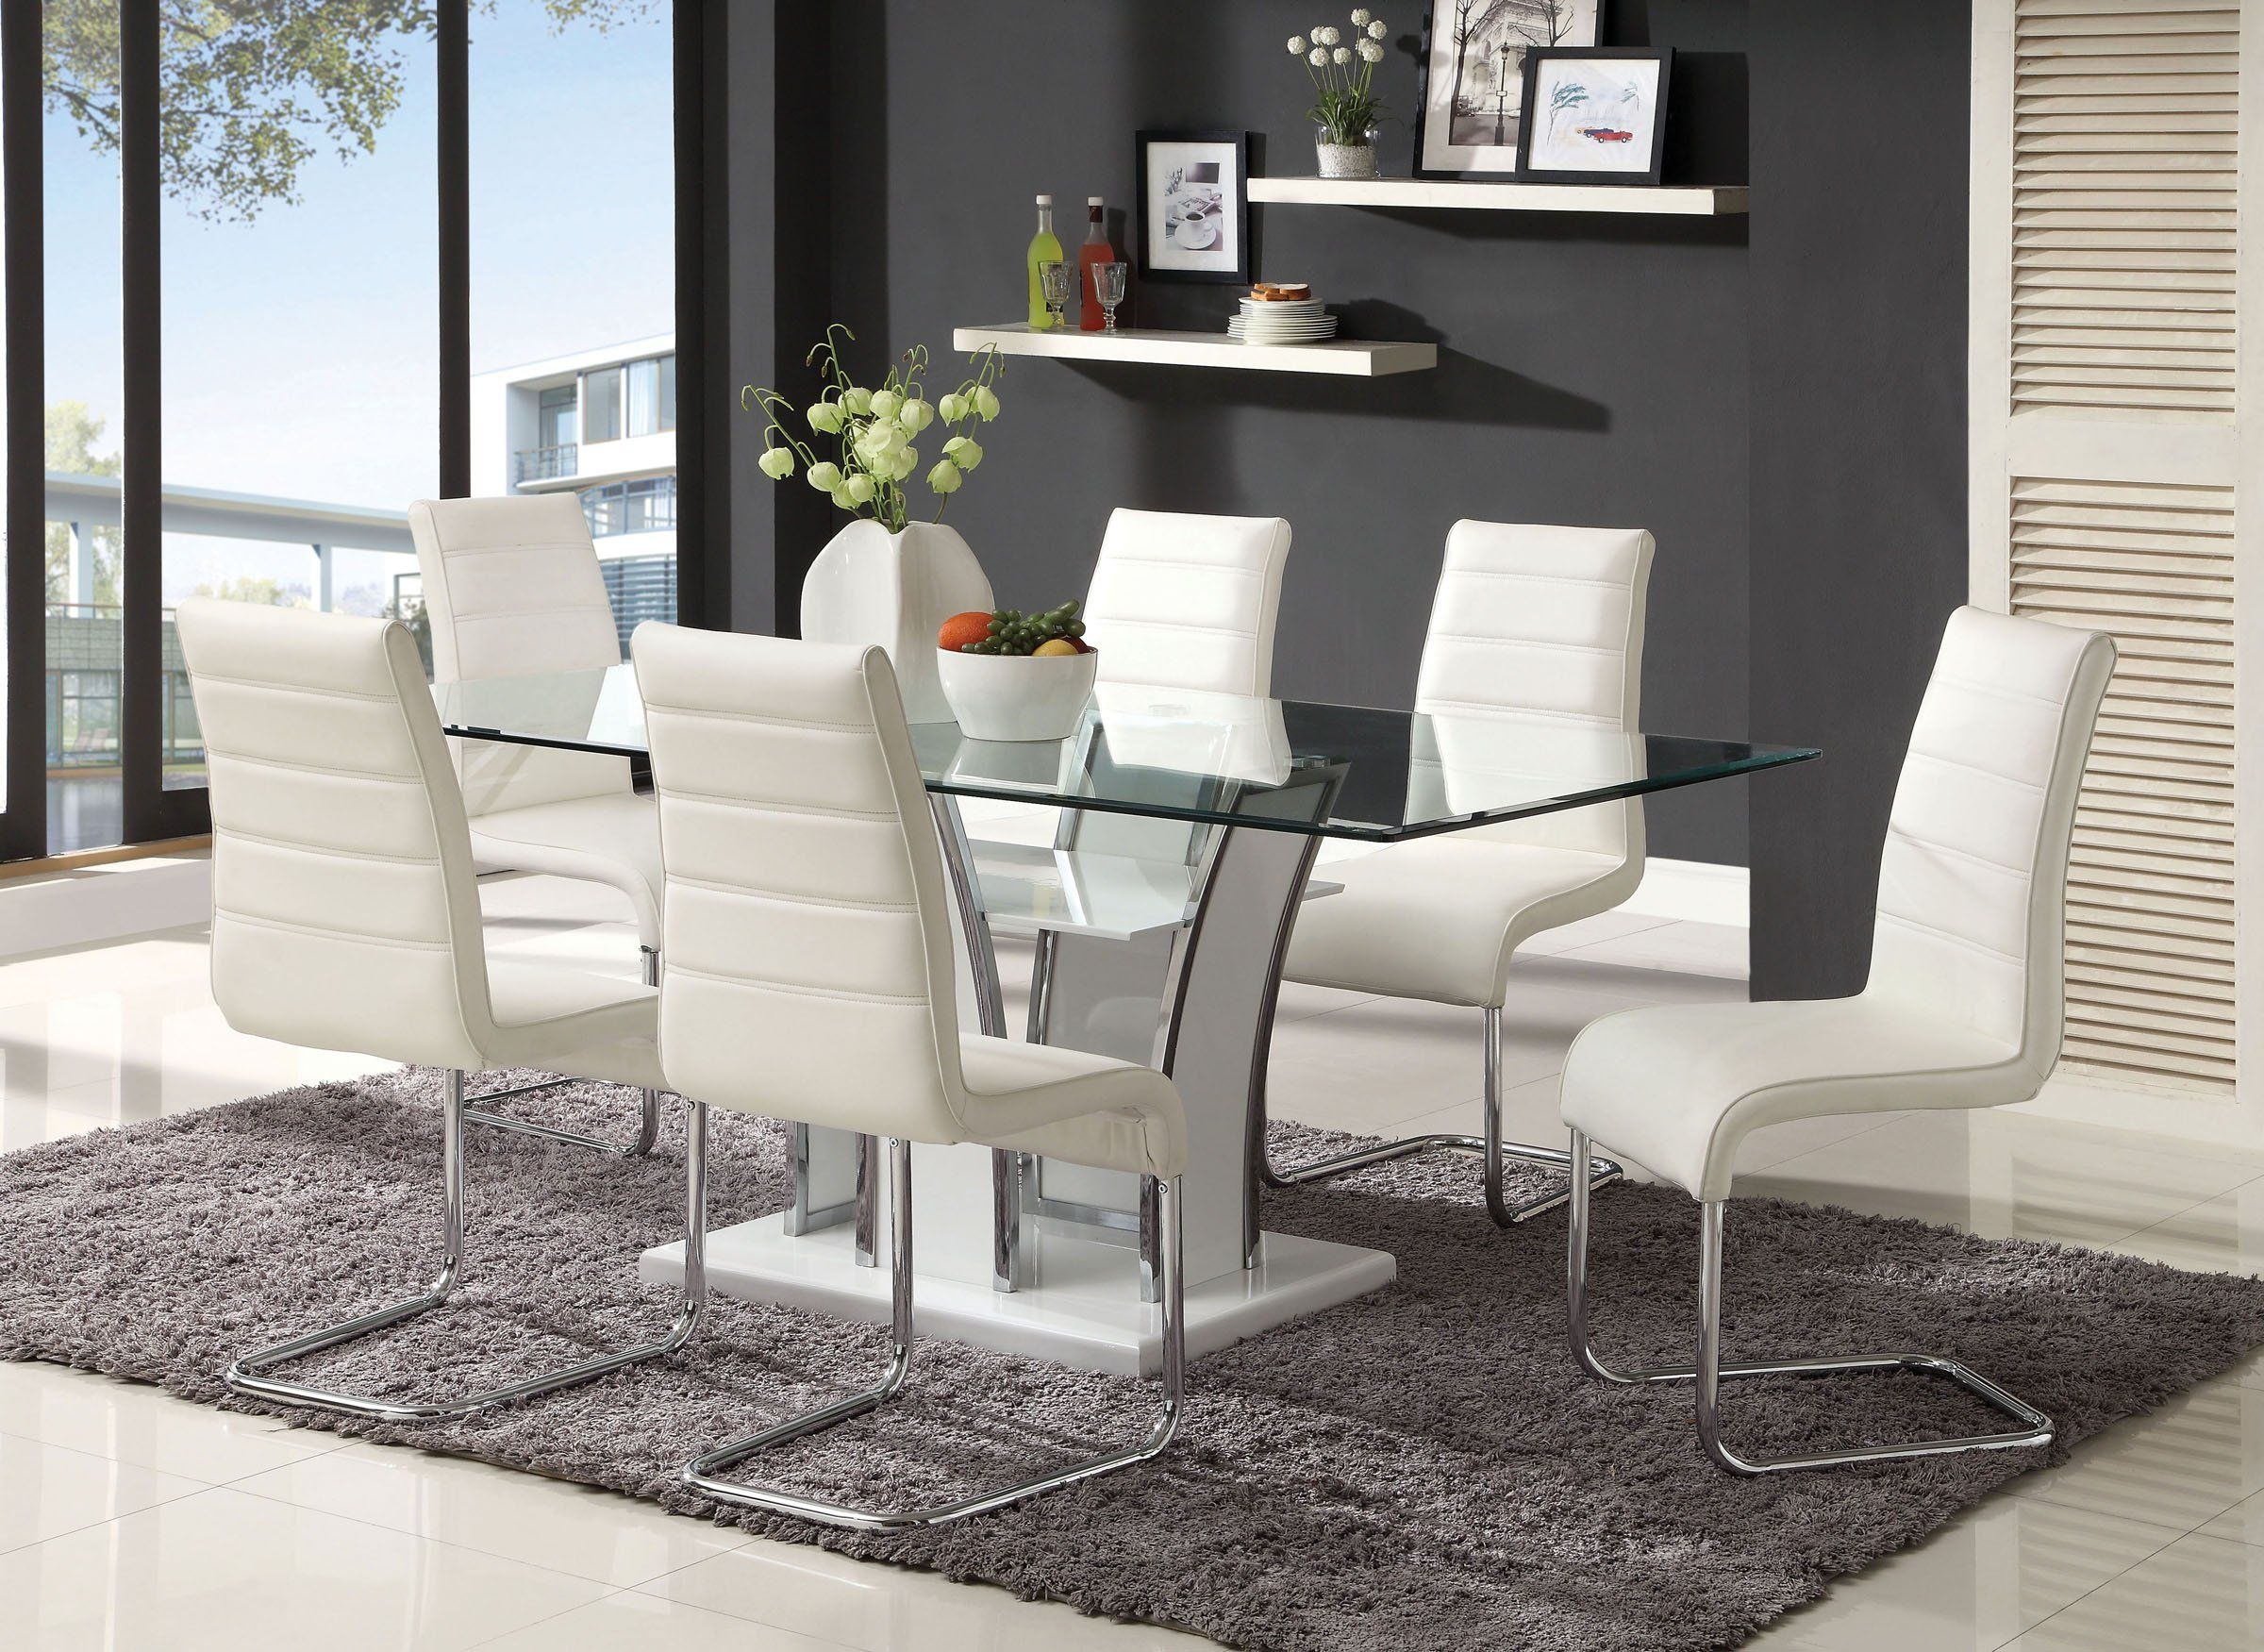 45+ Furniture of america dining room sets Best Choice